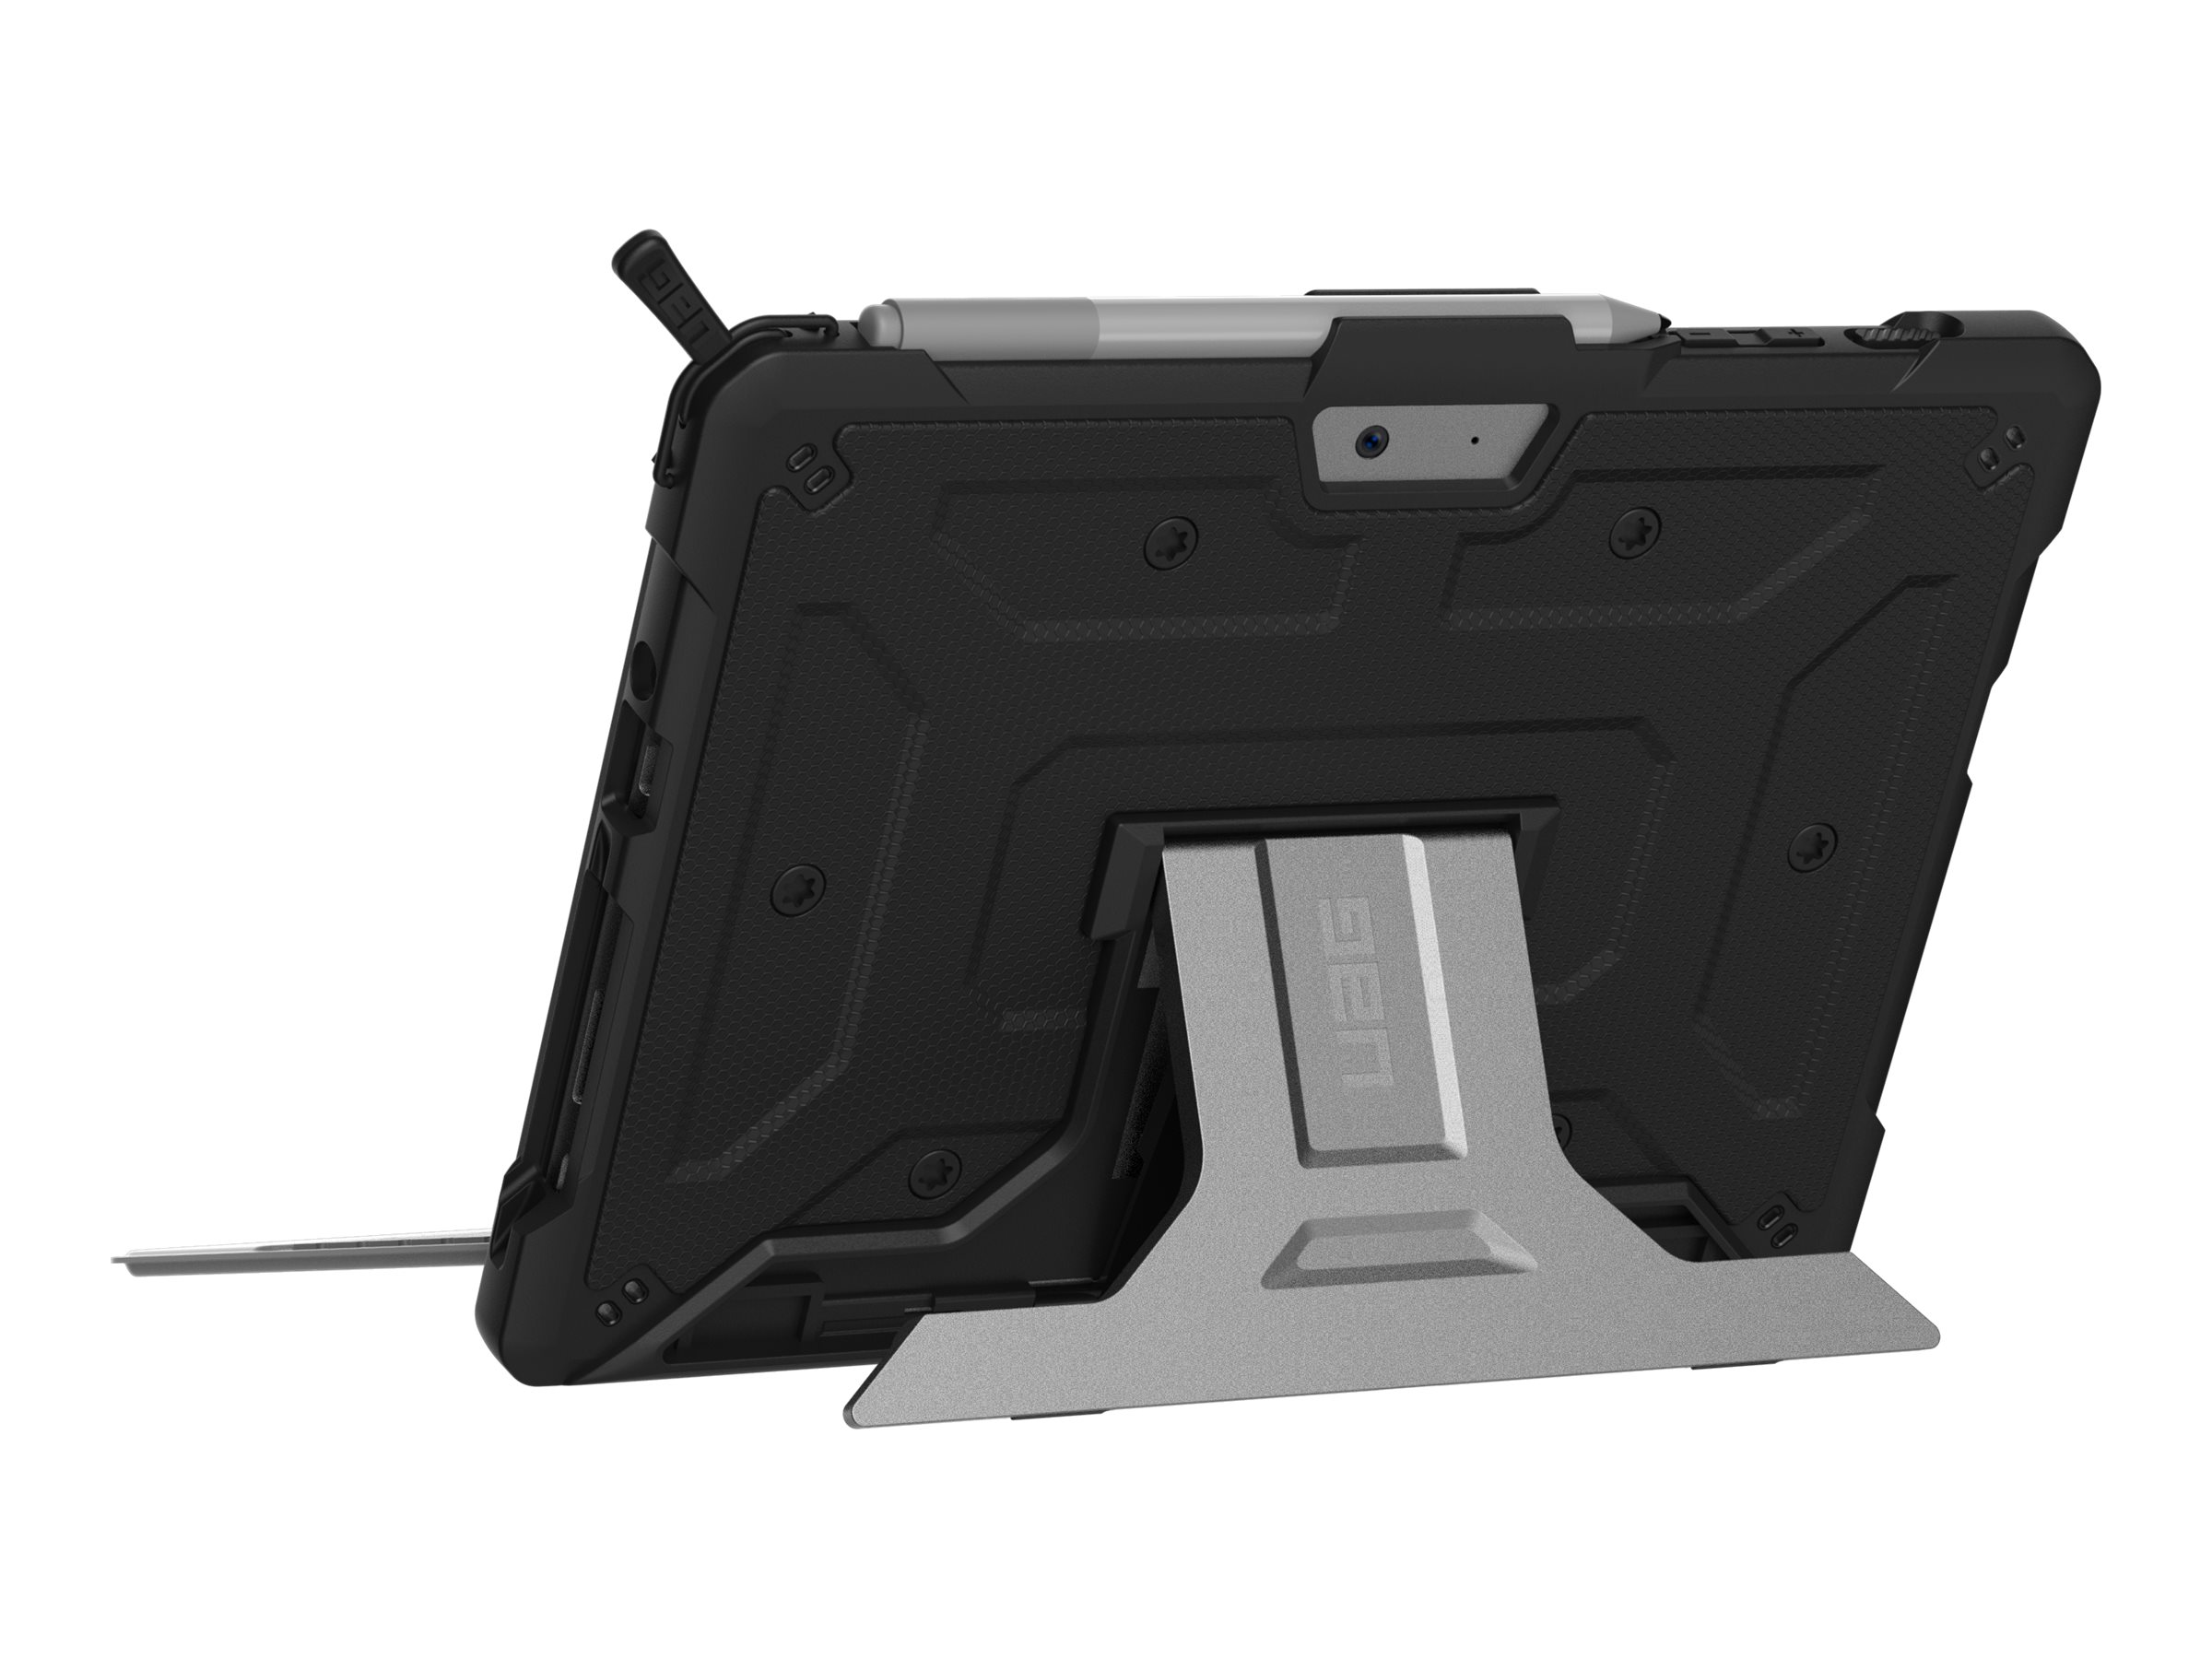 UAG Rugged Case for Microsoft Surface Go - Metropolis Black - Non-Retail Packaging - back cover for tablet